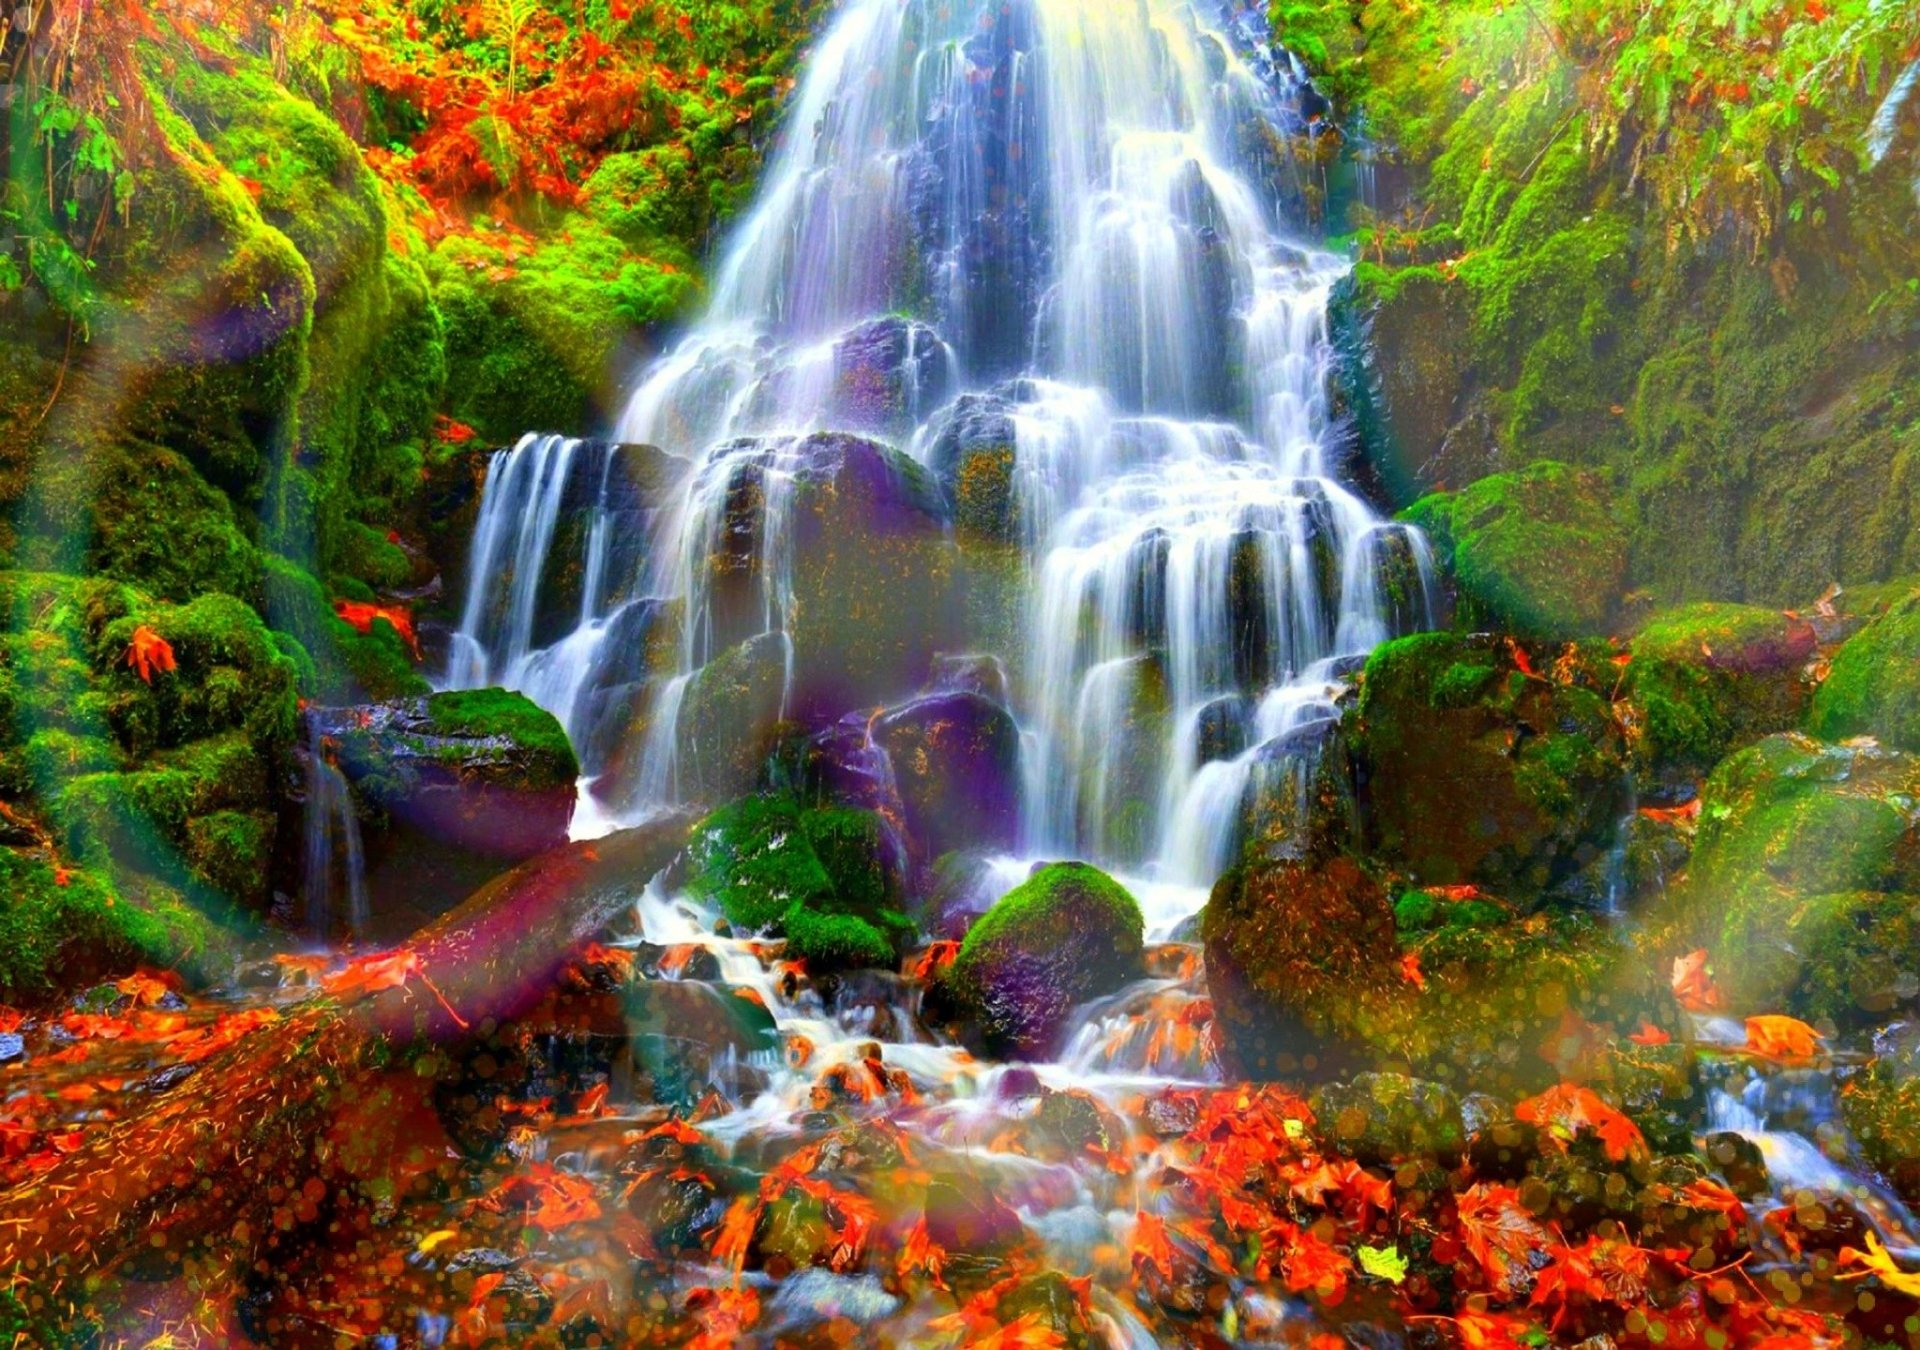 Fall Flowers Wallpaper Backgrounds Autumn Forest Water Cascades Full Hd Wallpaper And